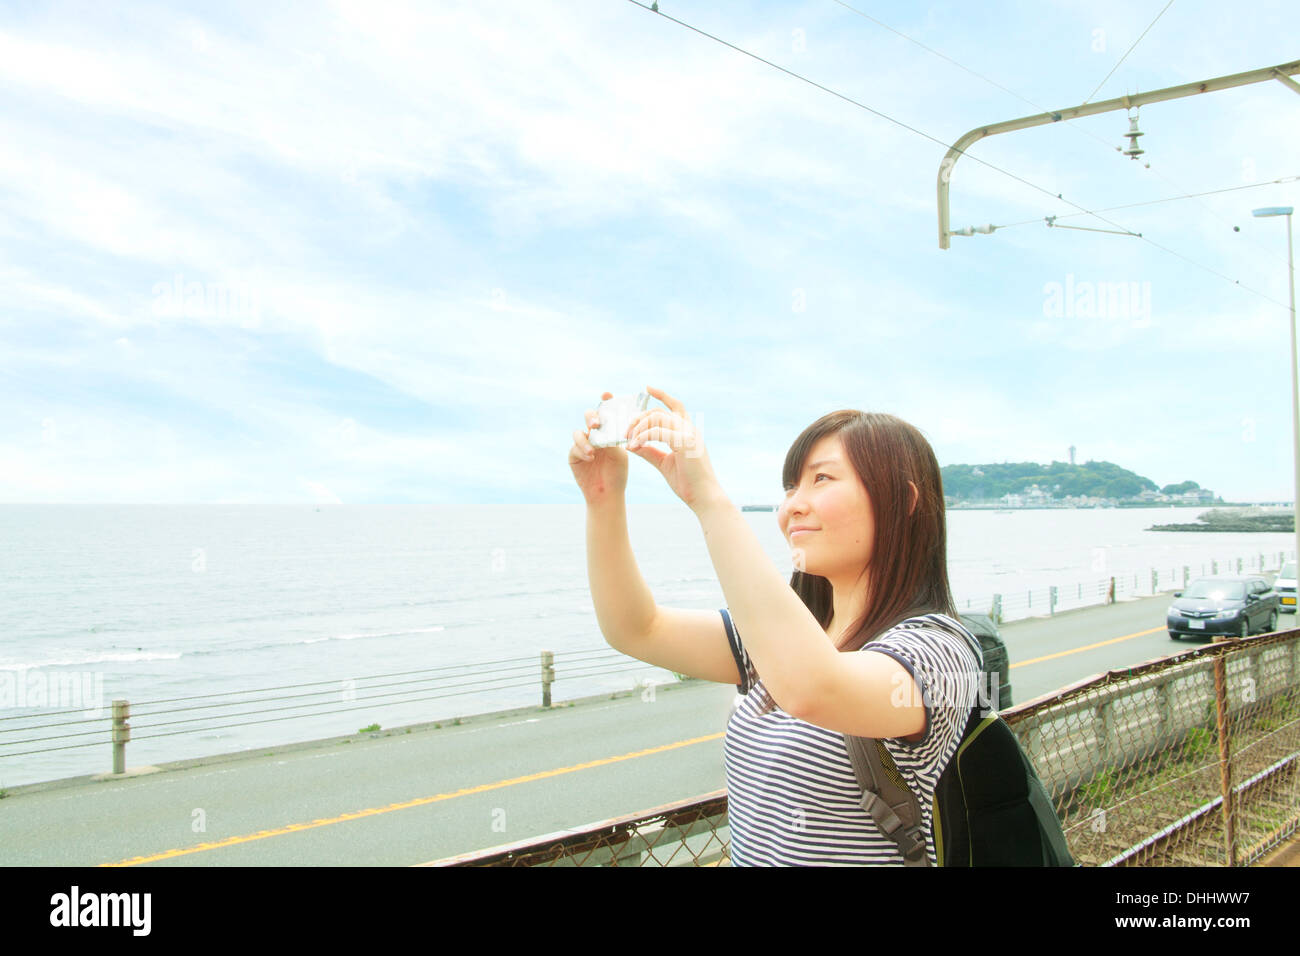 Young woman taking photo at coast with smartphone - Stock Image